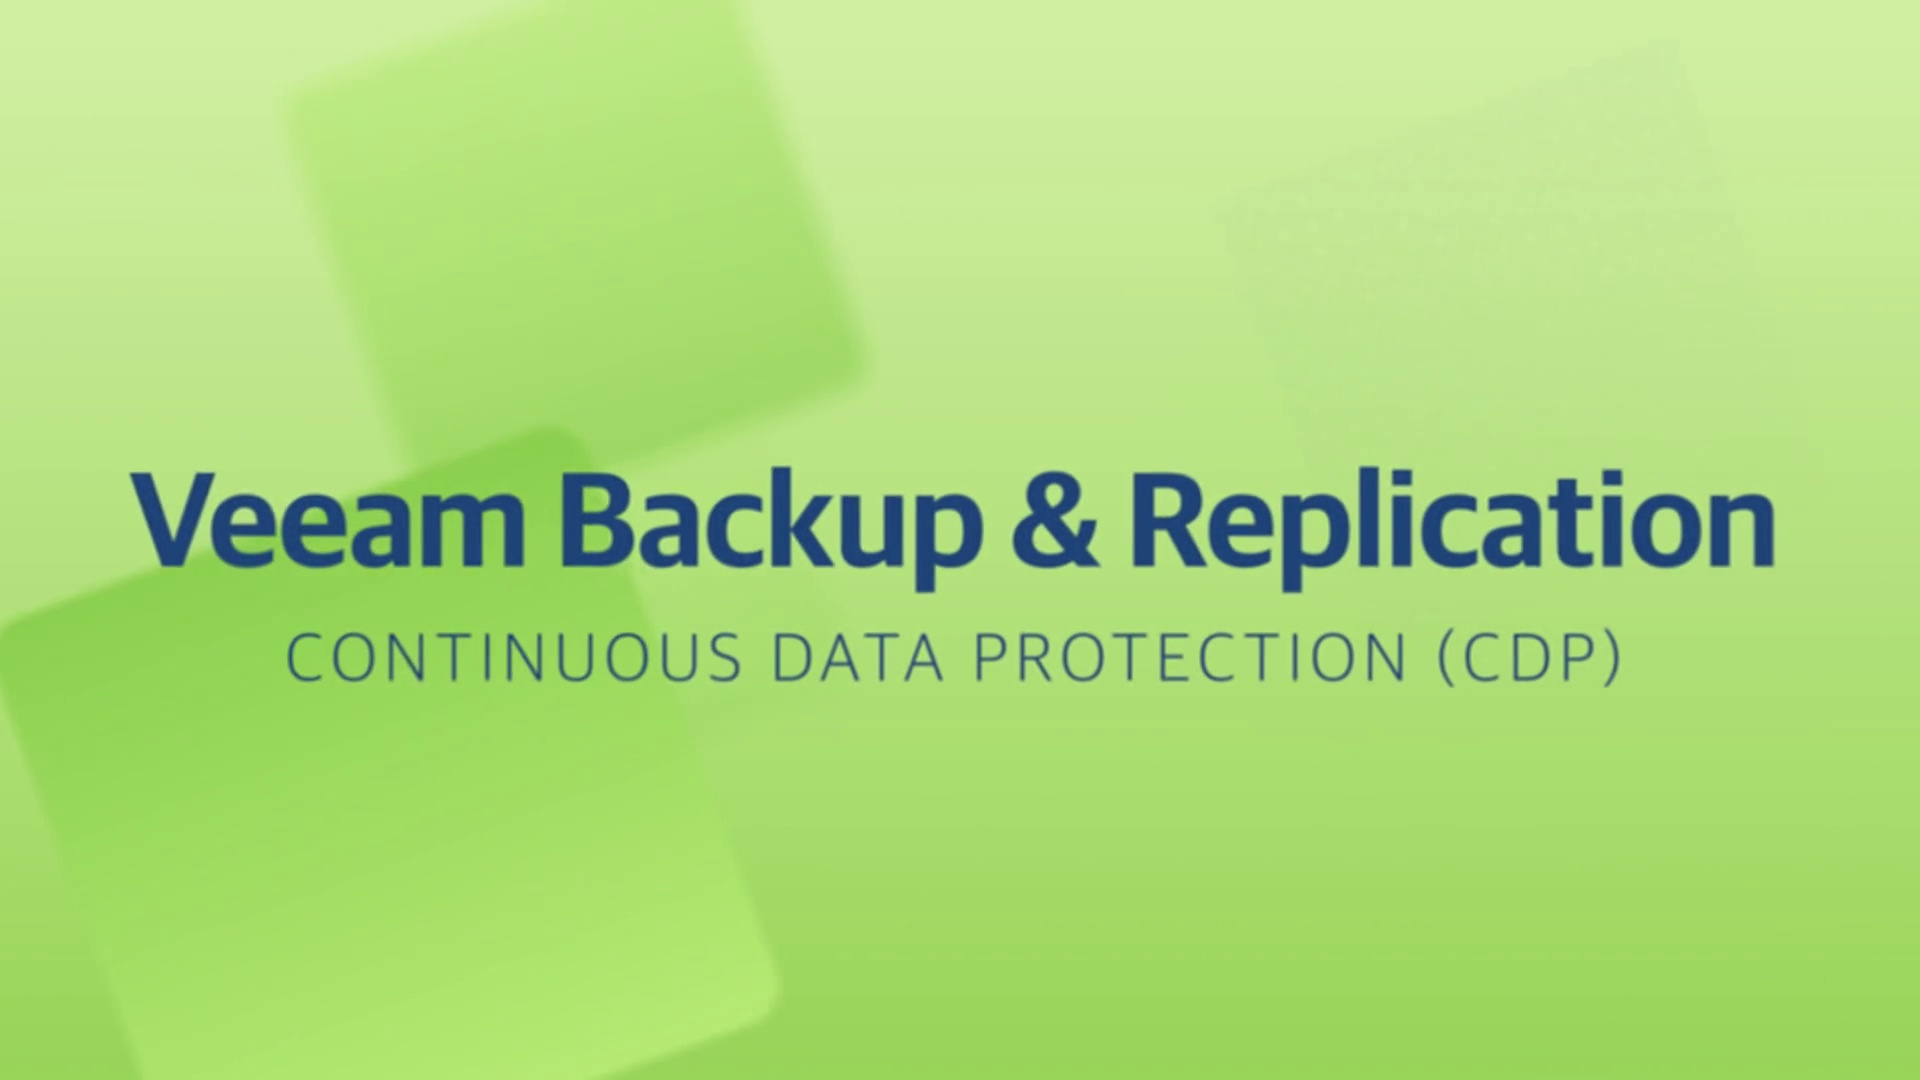 Product launch v11 - VBR - Continuous Data Protection (CDP)